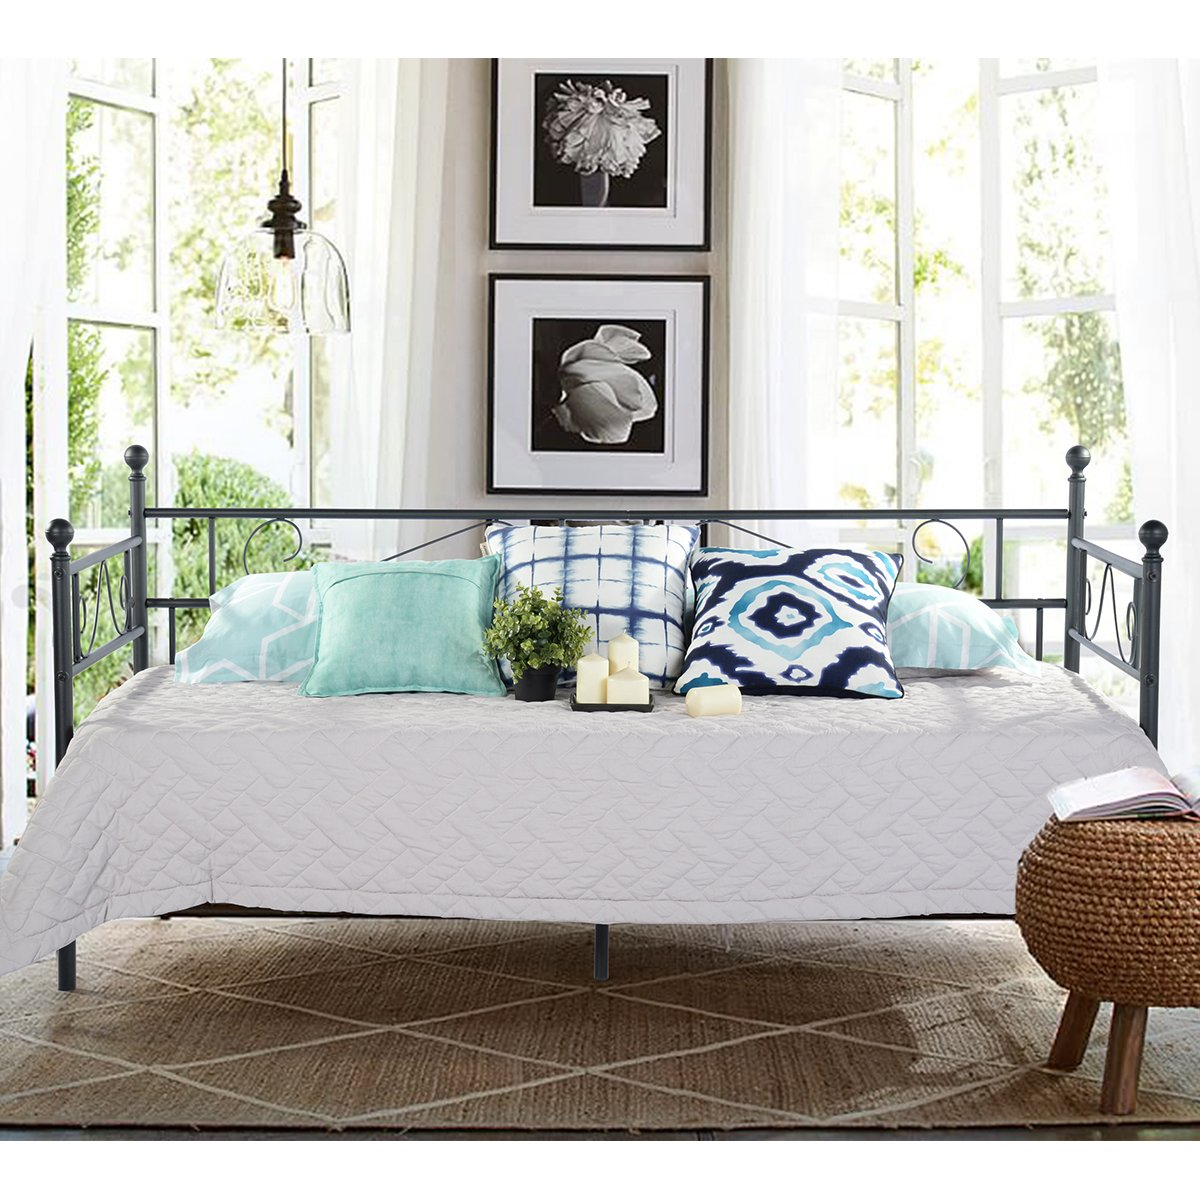 GreenForest Twin Size Daybed Couch Bed Frame/Steel Slats Platform Strong Support/Box Spring Replacement/Day Bed Frame